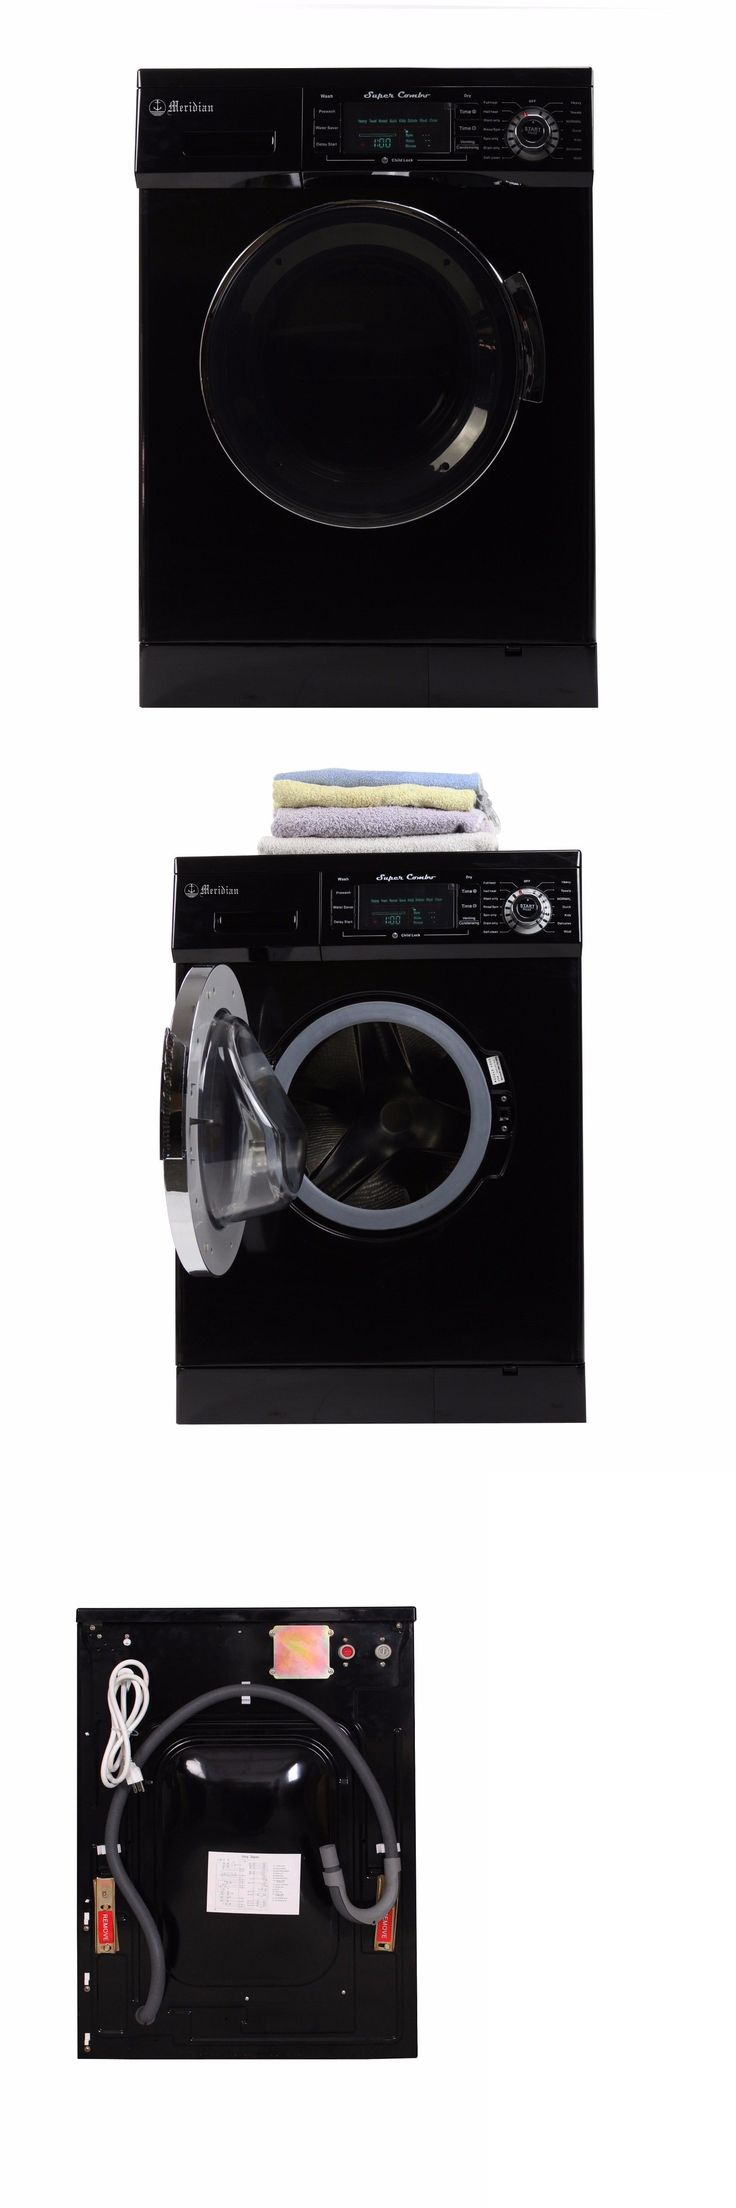 Lg 2 3 cu ft all in one washer and dryer - Washer And Dryer Sets 71257 1 6 Cu Ft All In One